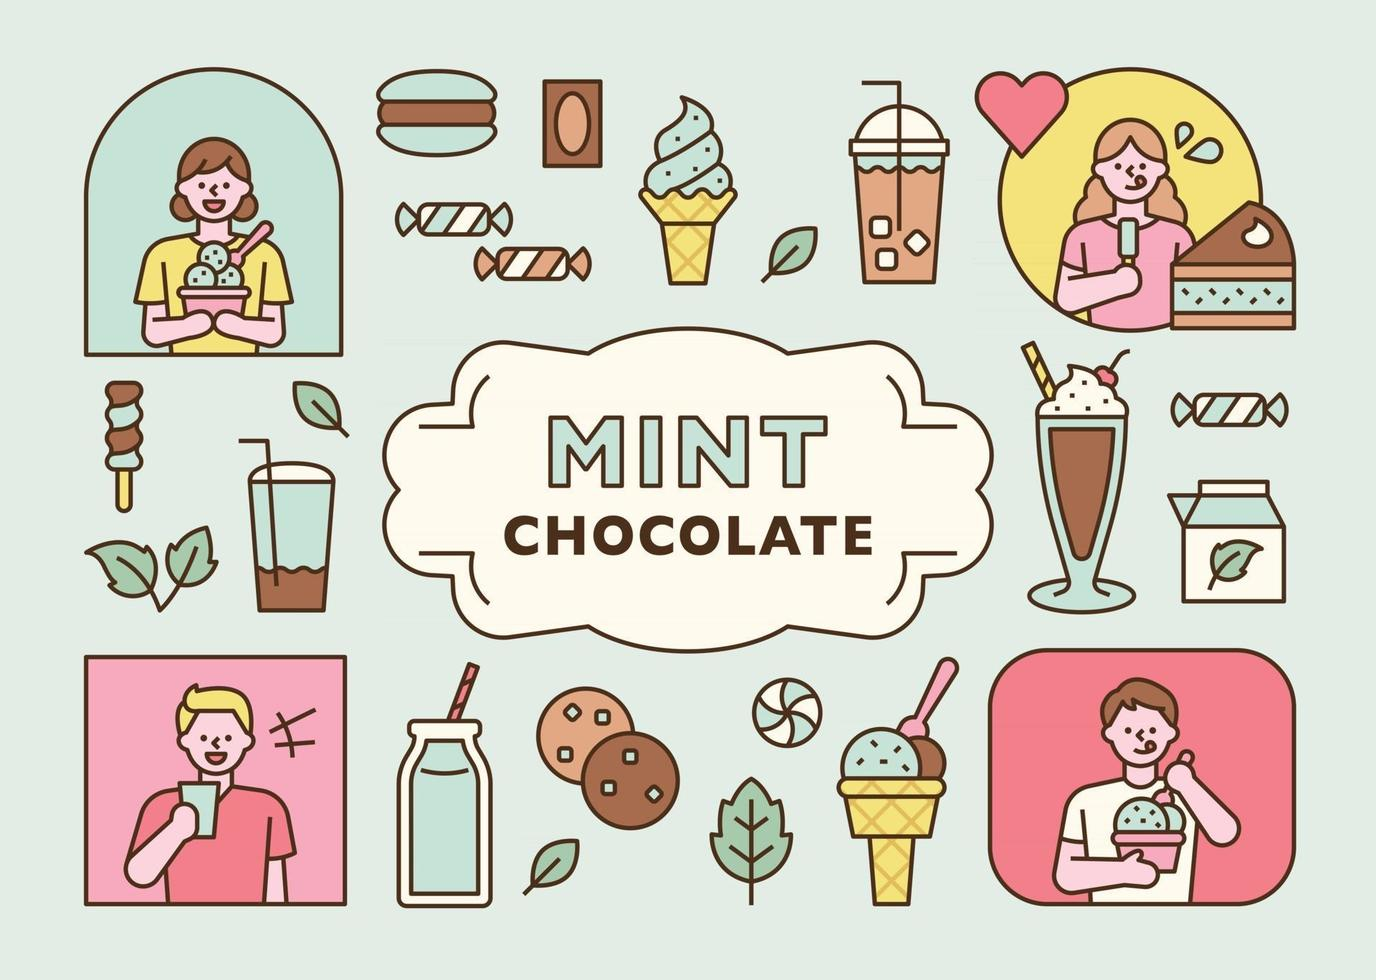 Various mint flavored dessert icons and people enjoying them. flat design style minimal vector illustration.